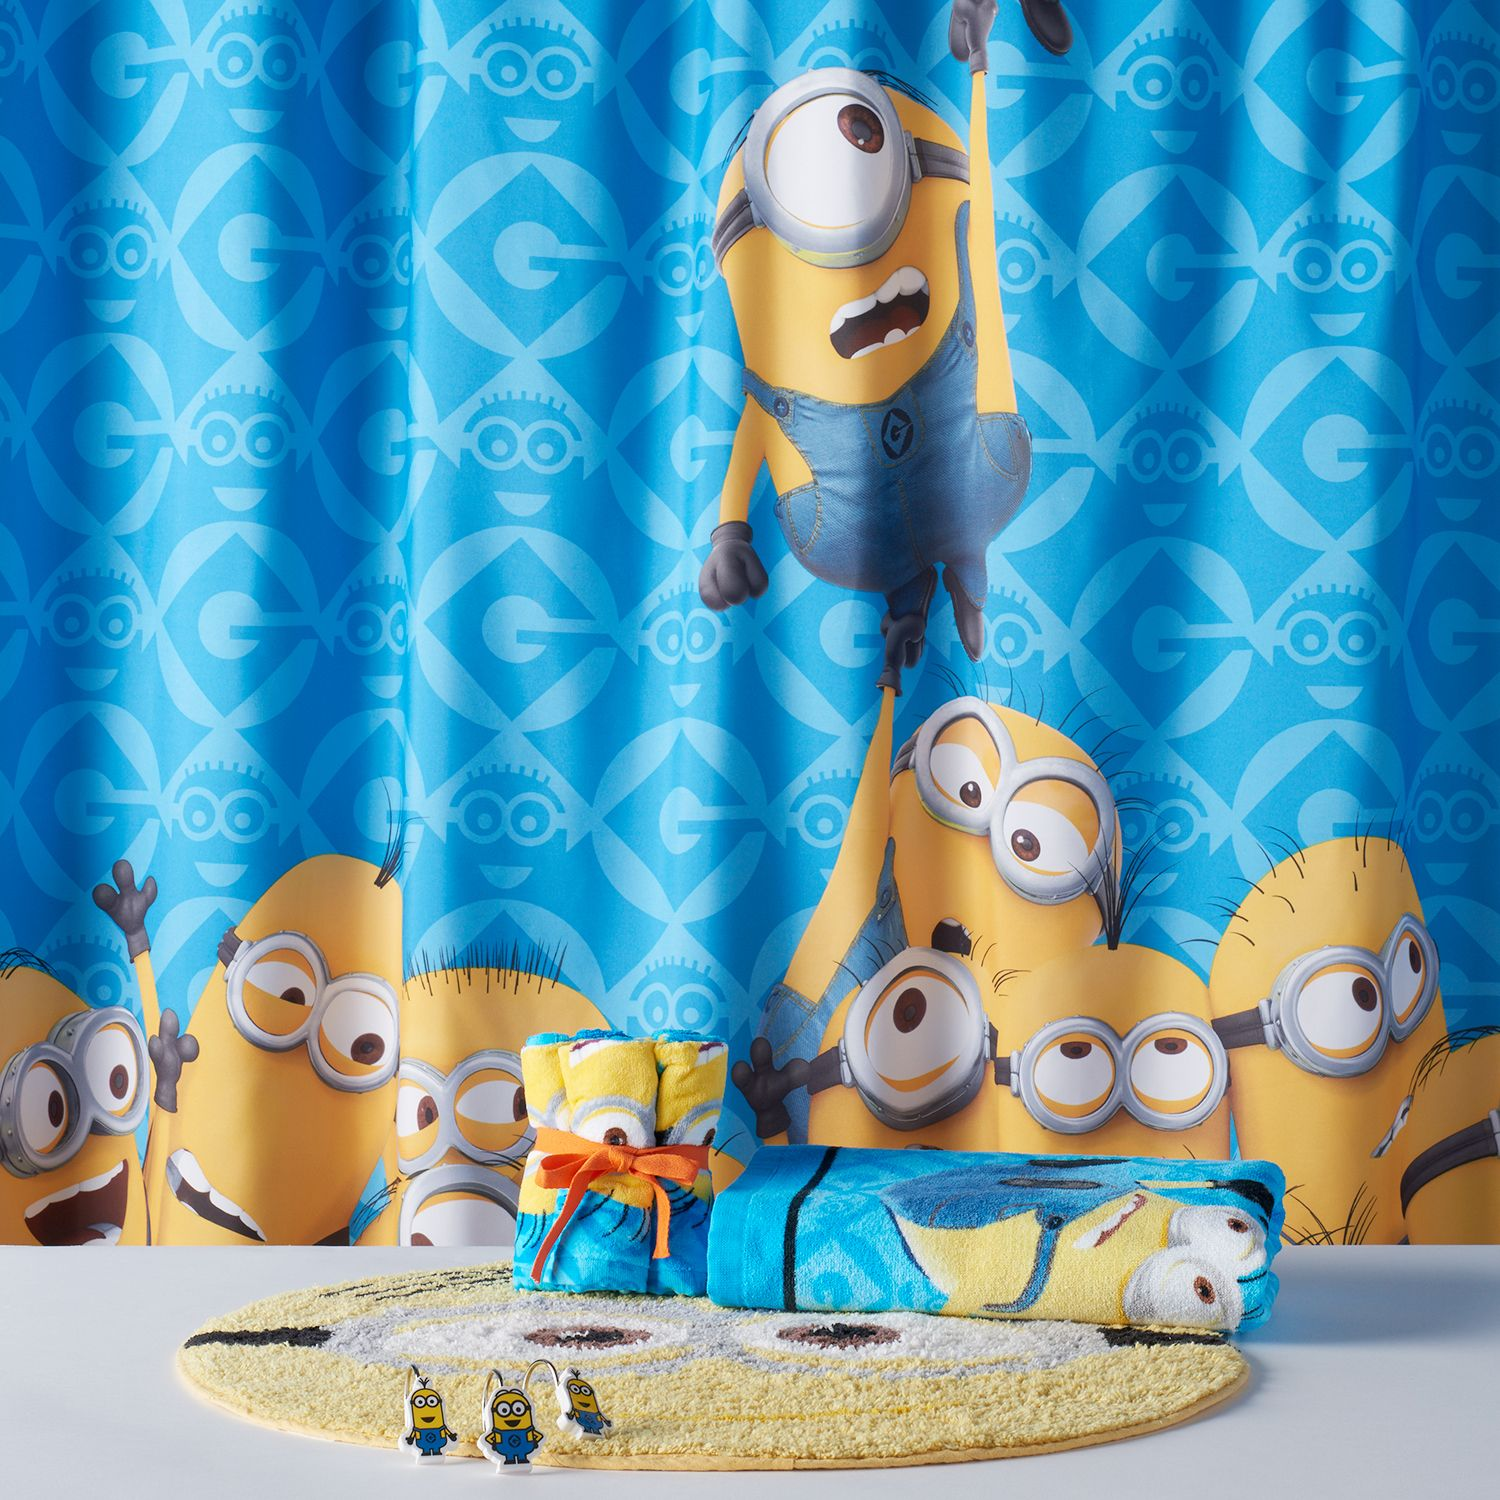 Exceptional Minions Mayhem Shower Curtain Collection